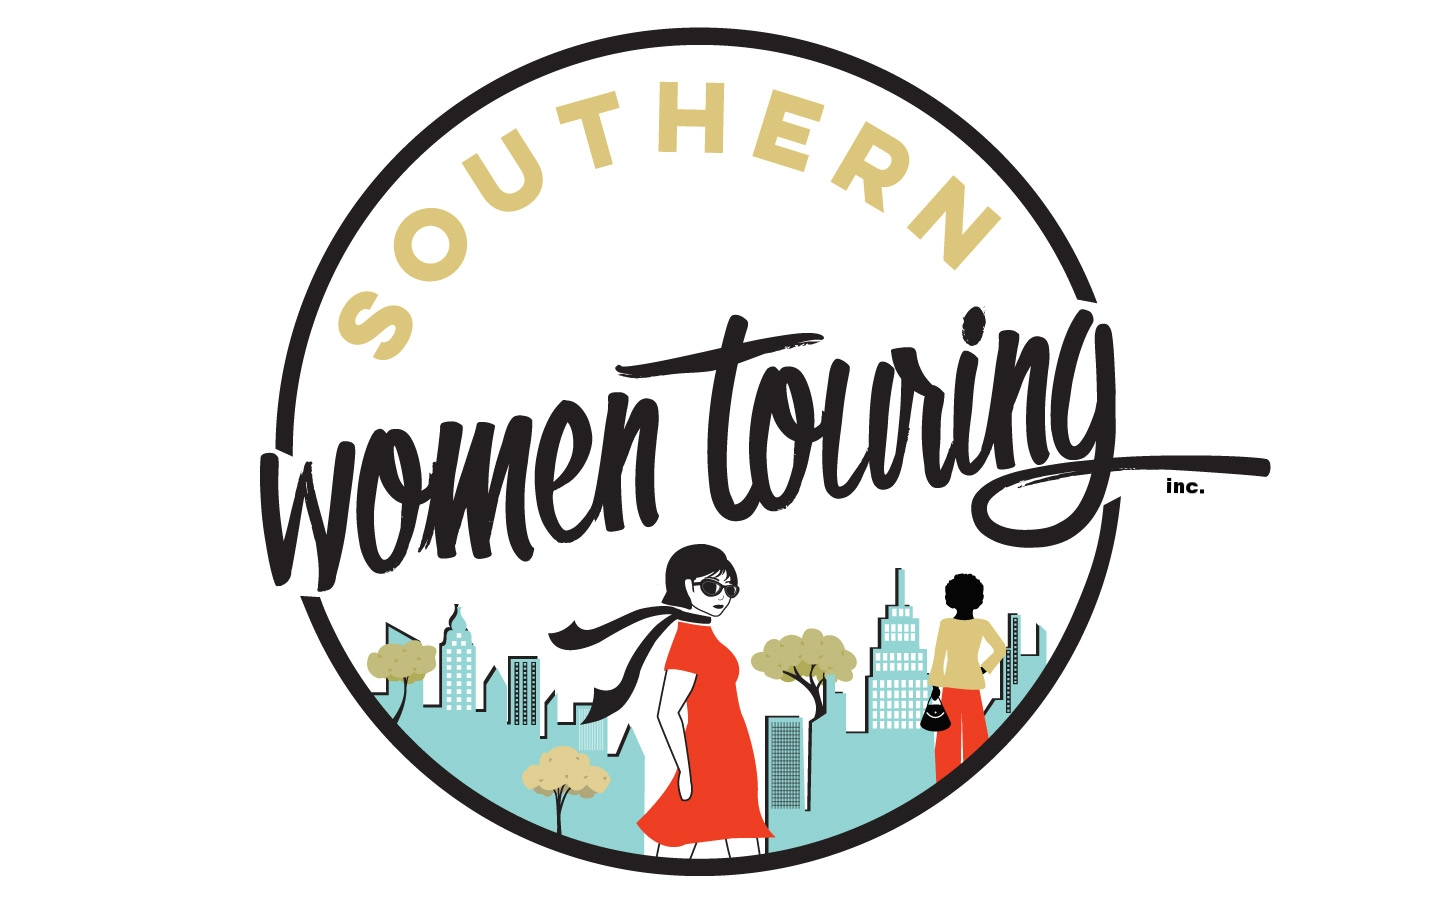 SOUTHERN WOMEN TOURING, Inc.